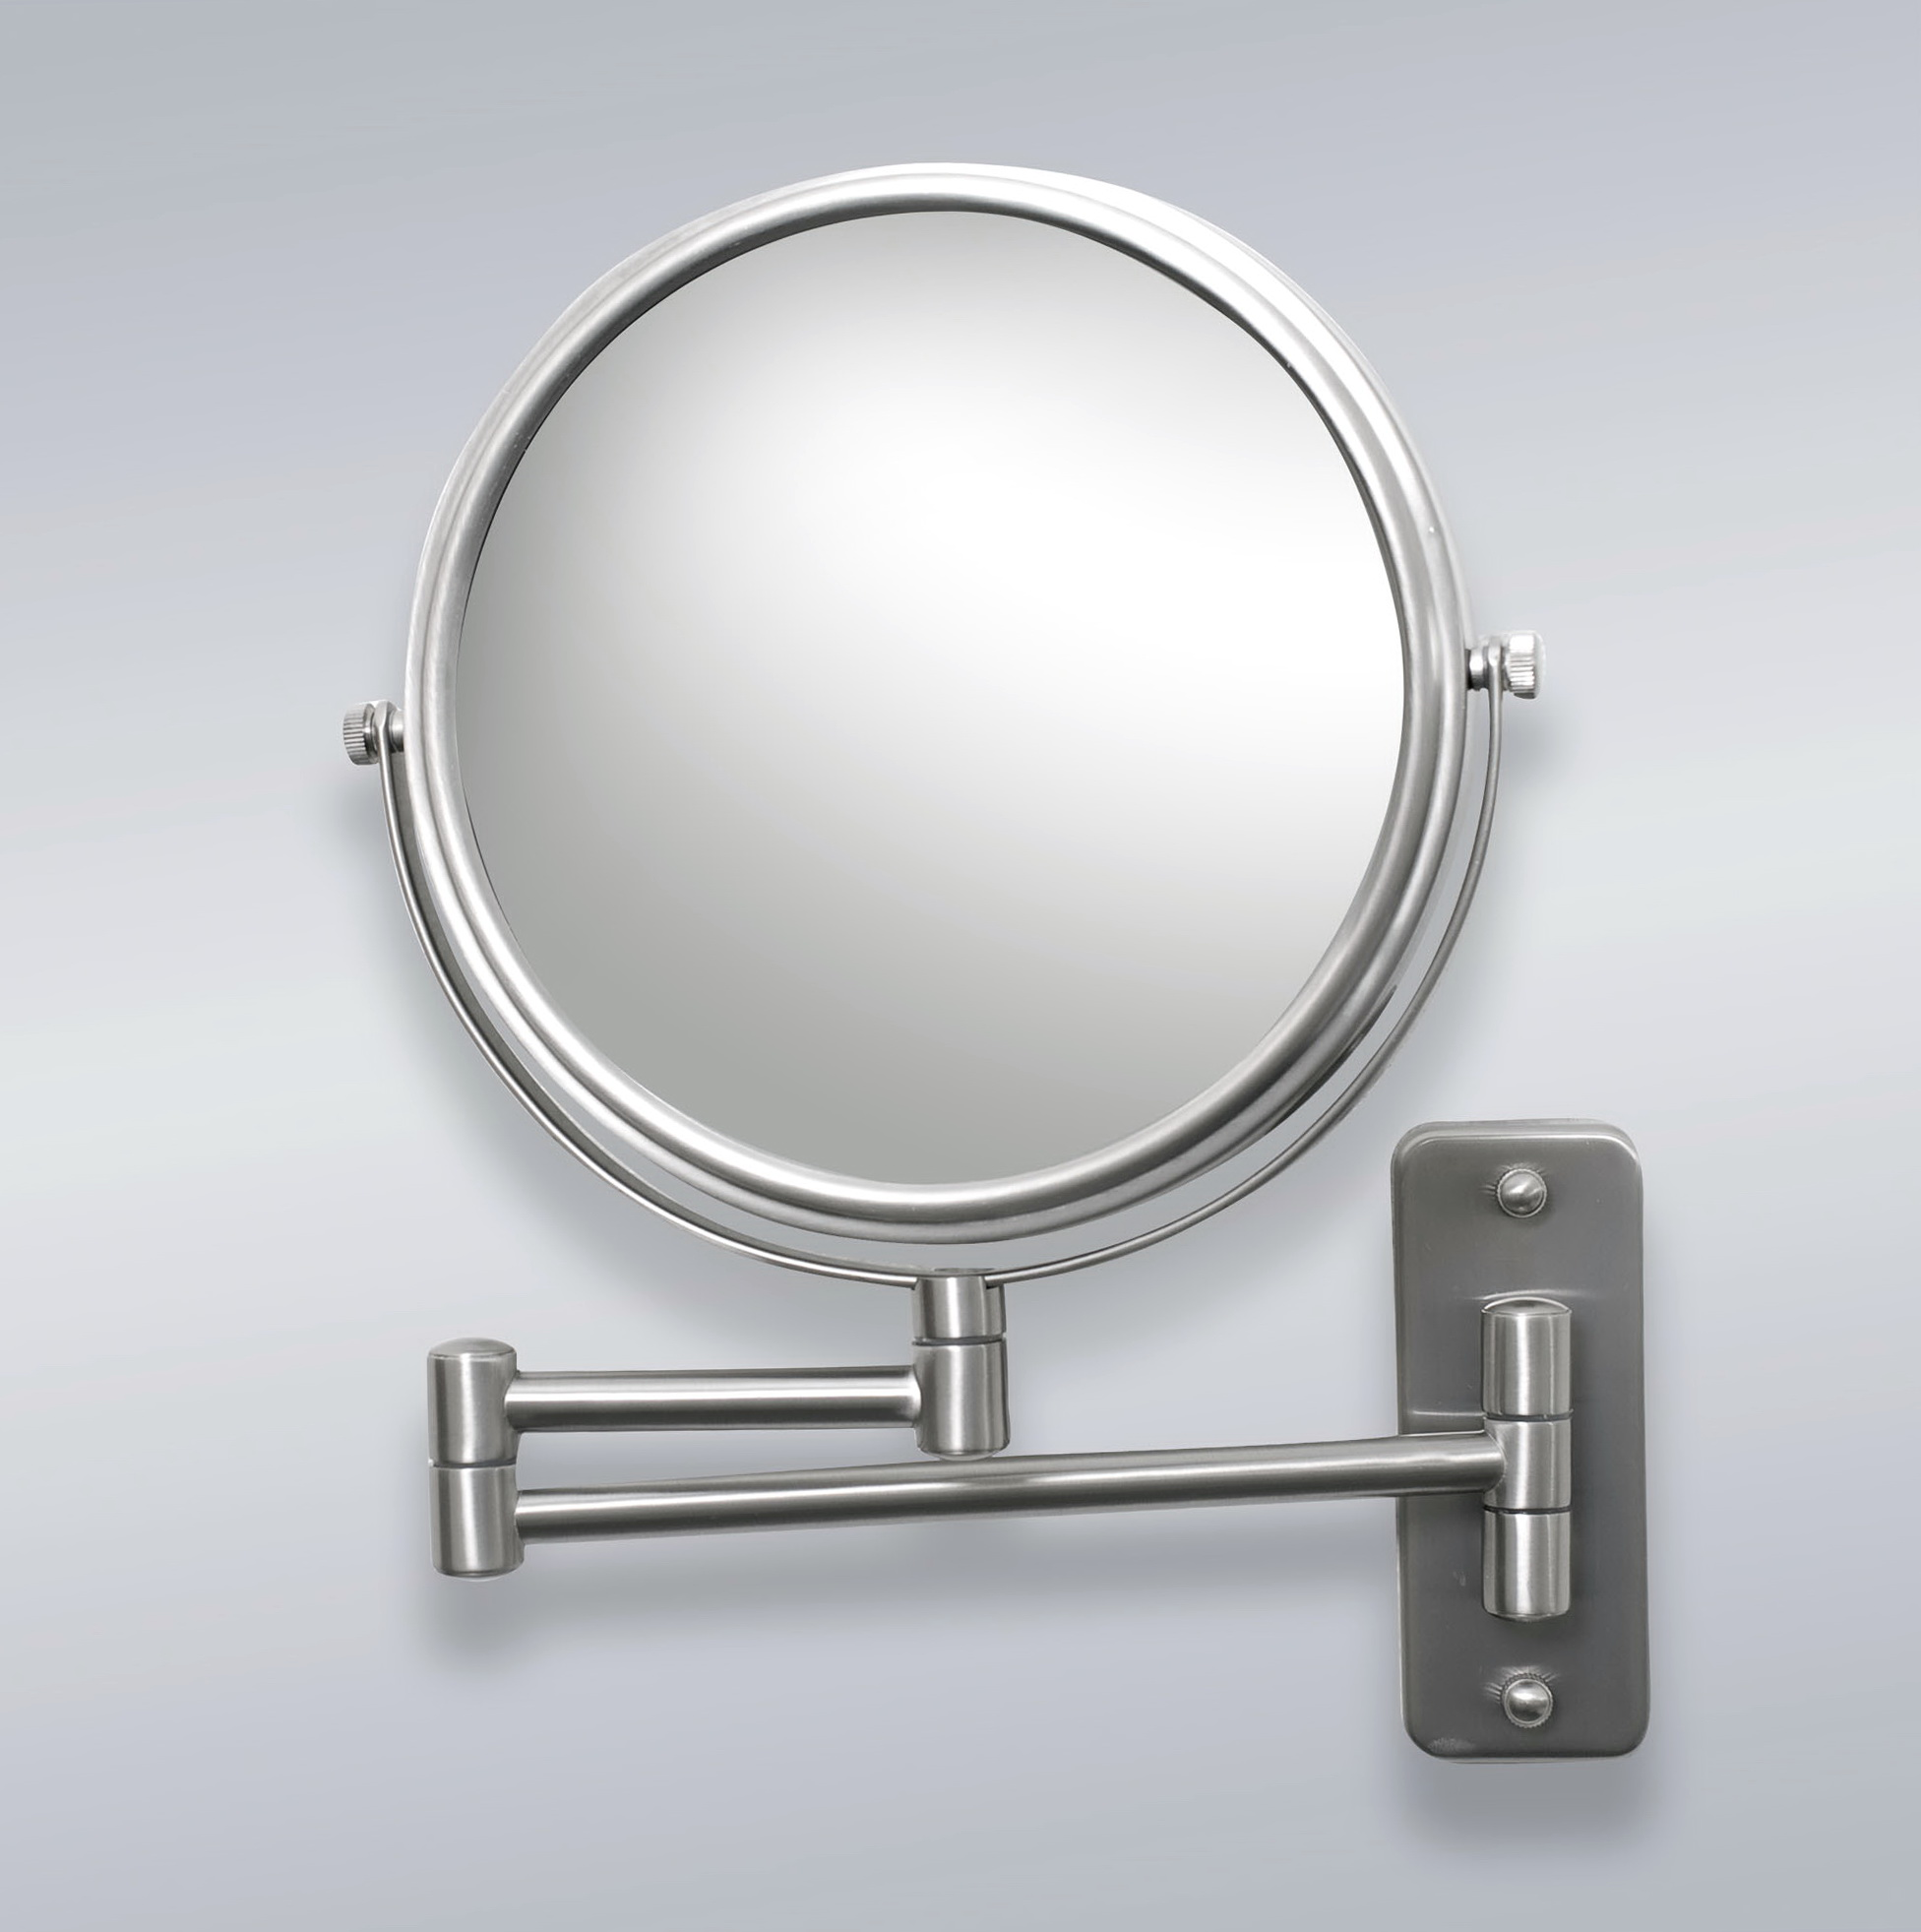 Wall Mounted Magnifying Mirror Brushed Nickel Home